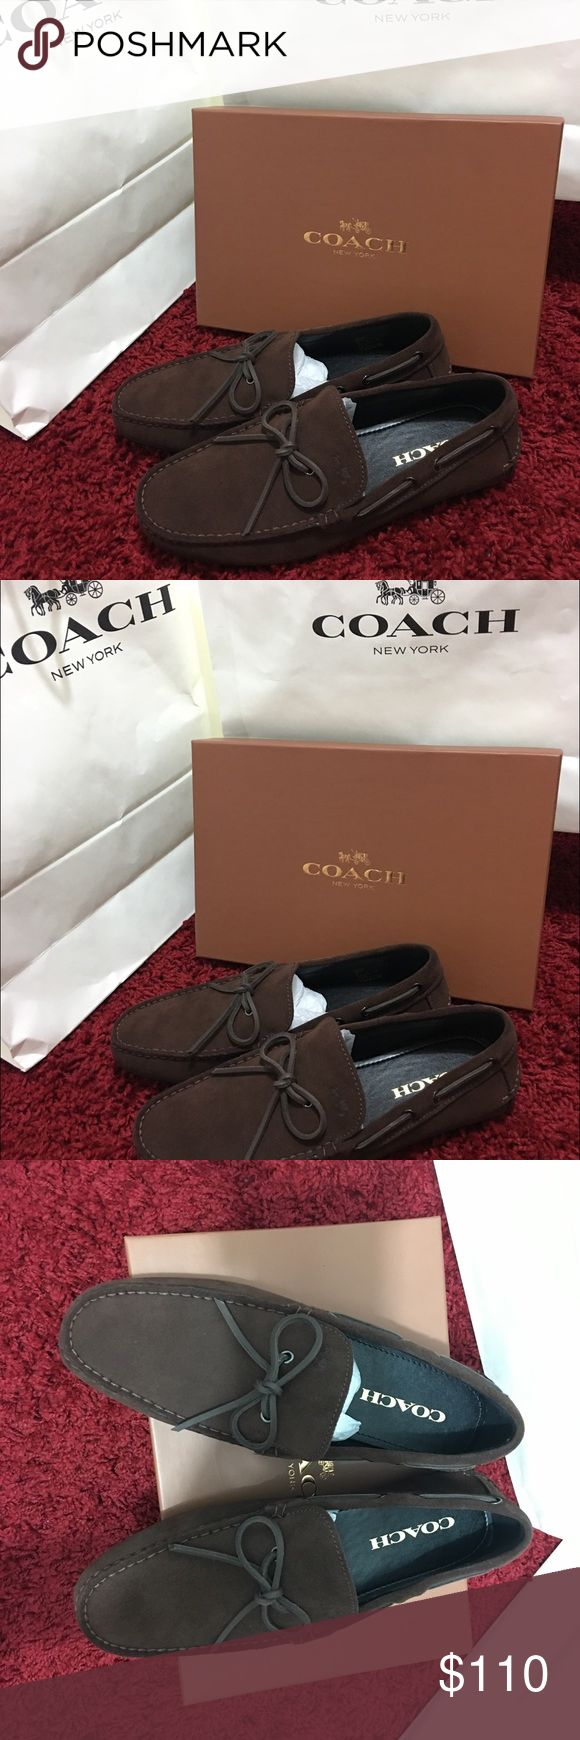 Coach men loafers size 10.5 D Brown New with tag and box 100 % Authantic Coach Coach Shoes Loafers & Slip-Ons